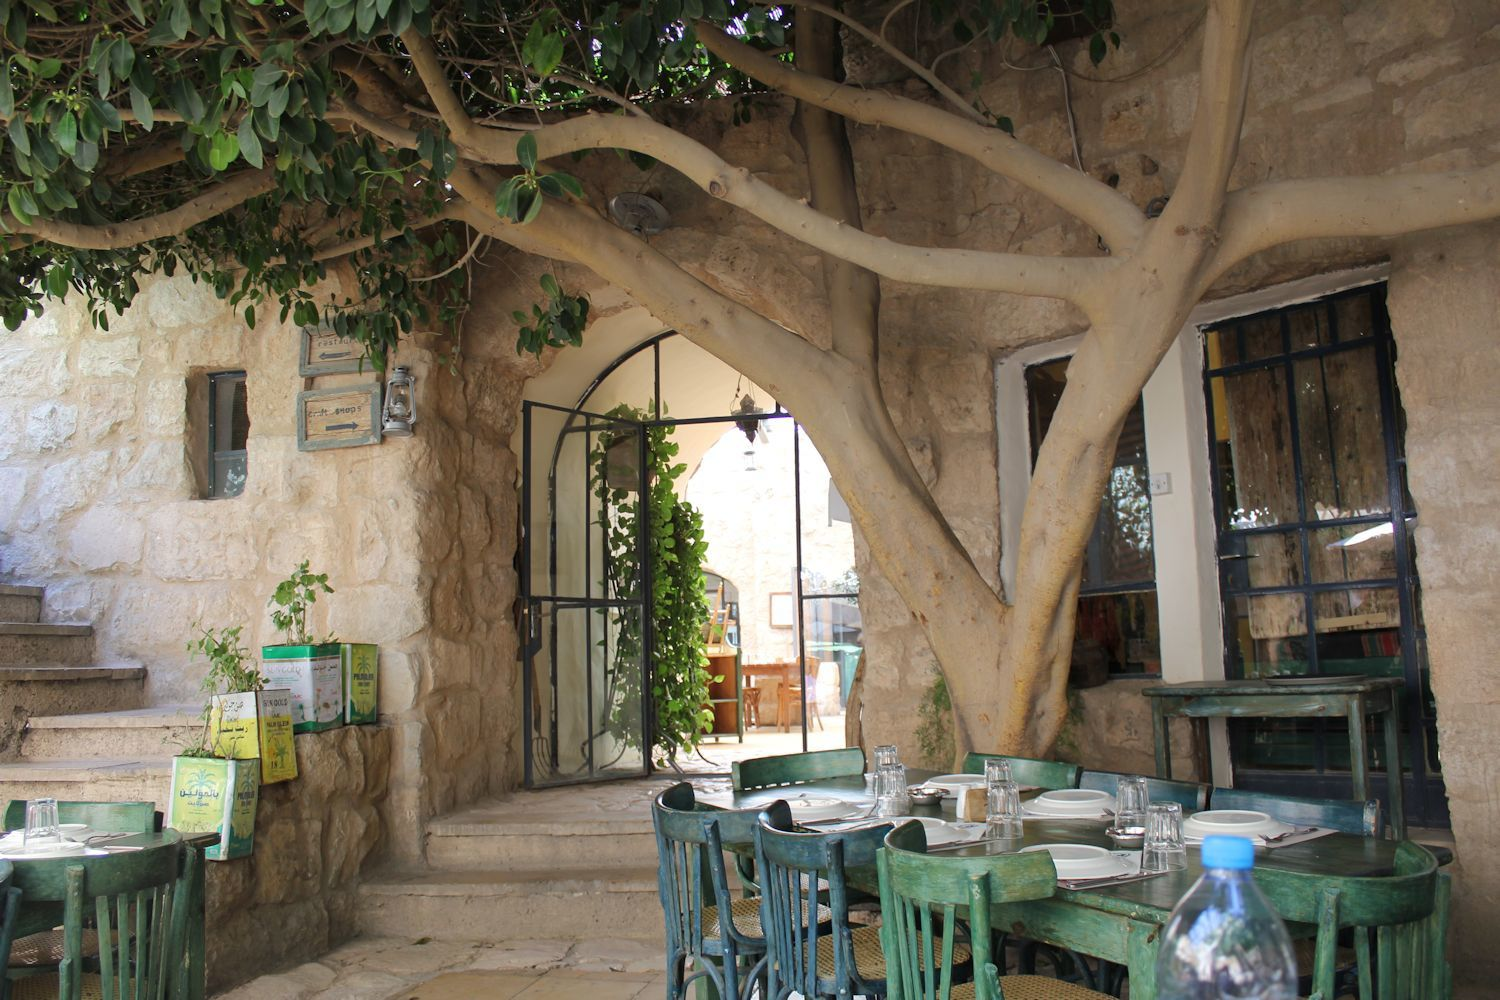 Enjoying DELICIOUS Arabic cuisine in on of the restaurants in Madaba town